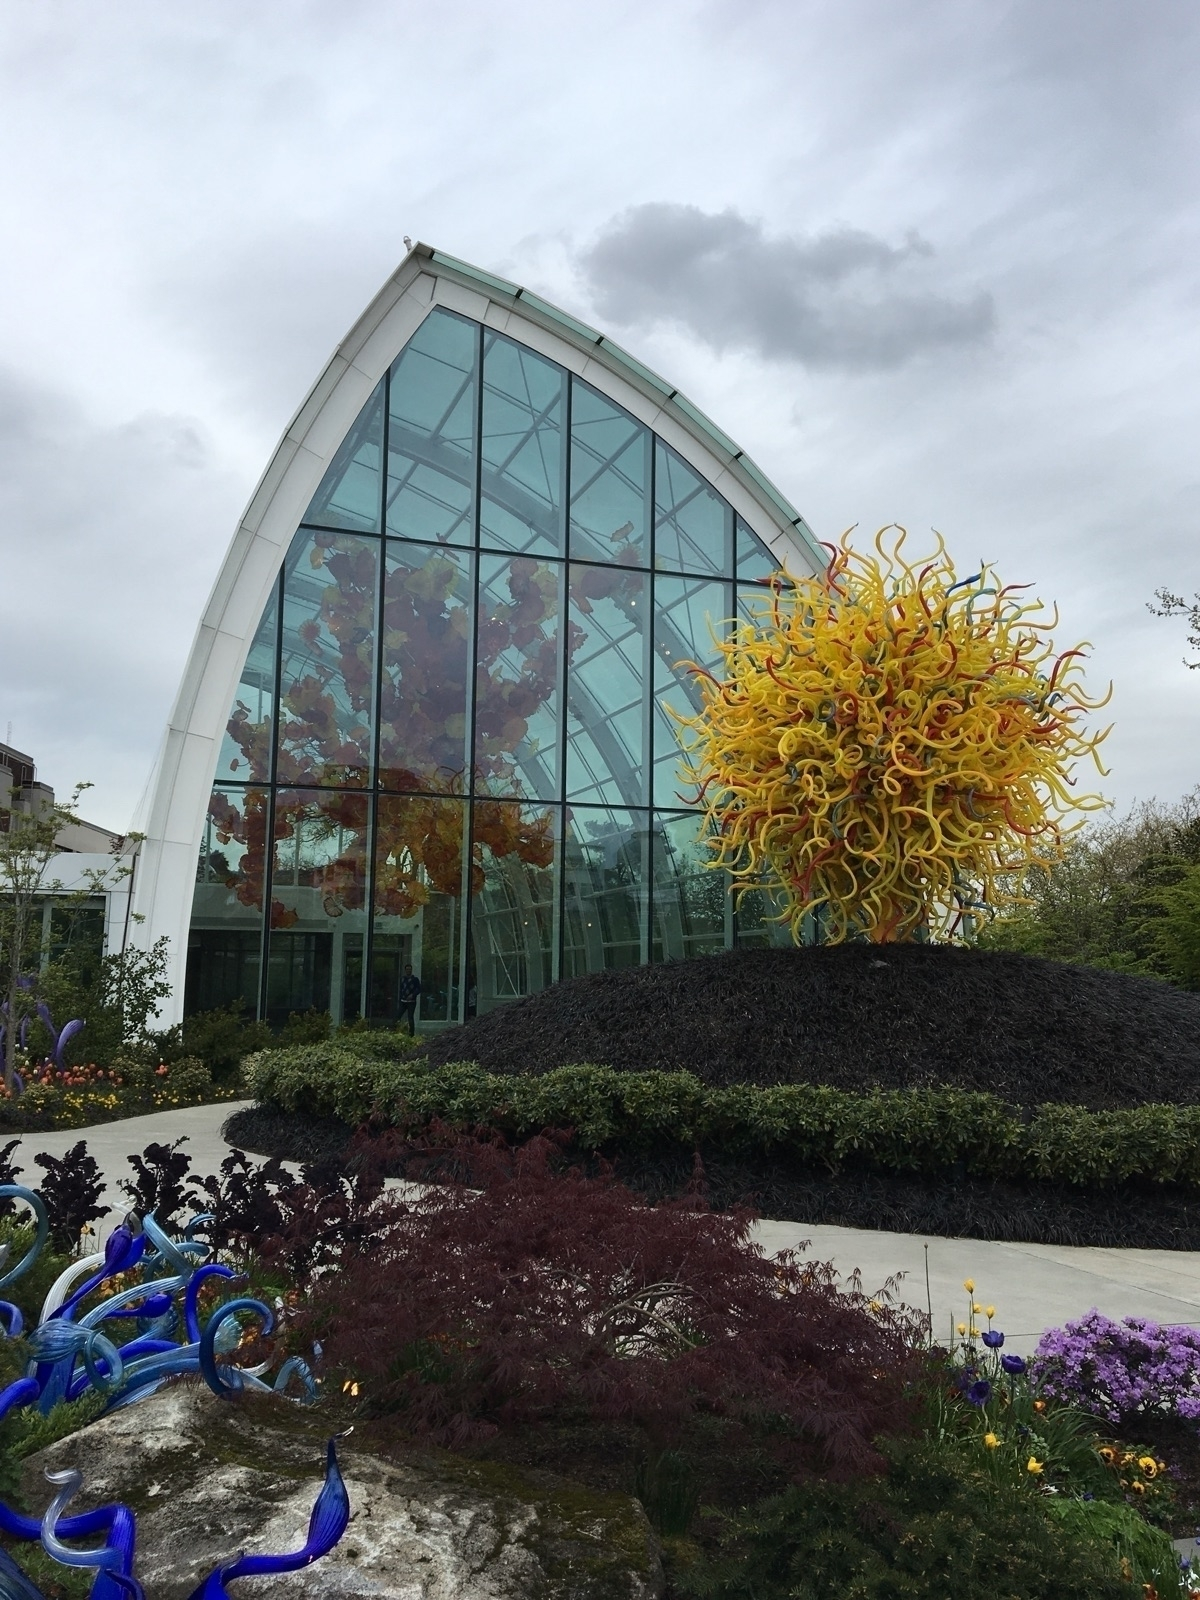 Chihuly, glass, museum, Seattle - icarlton | ello